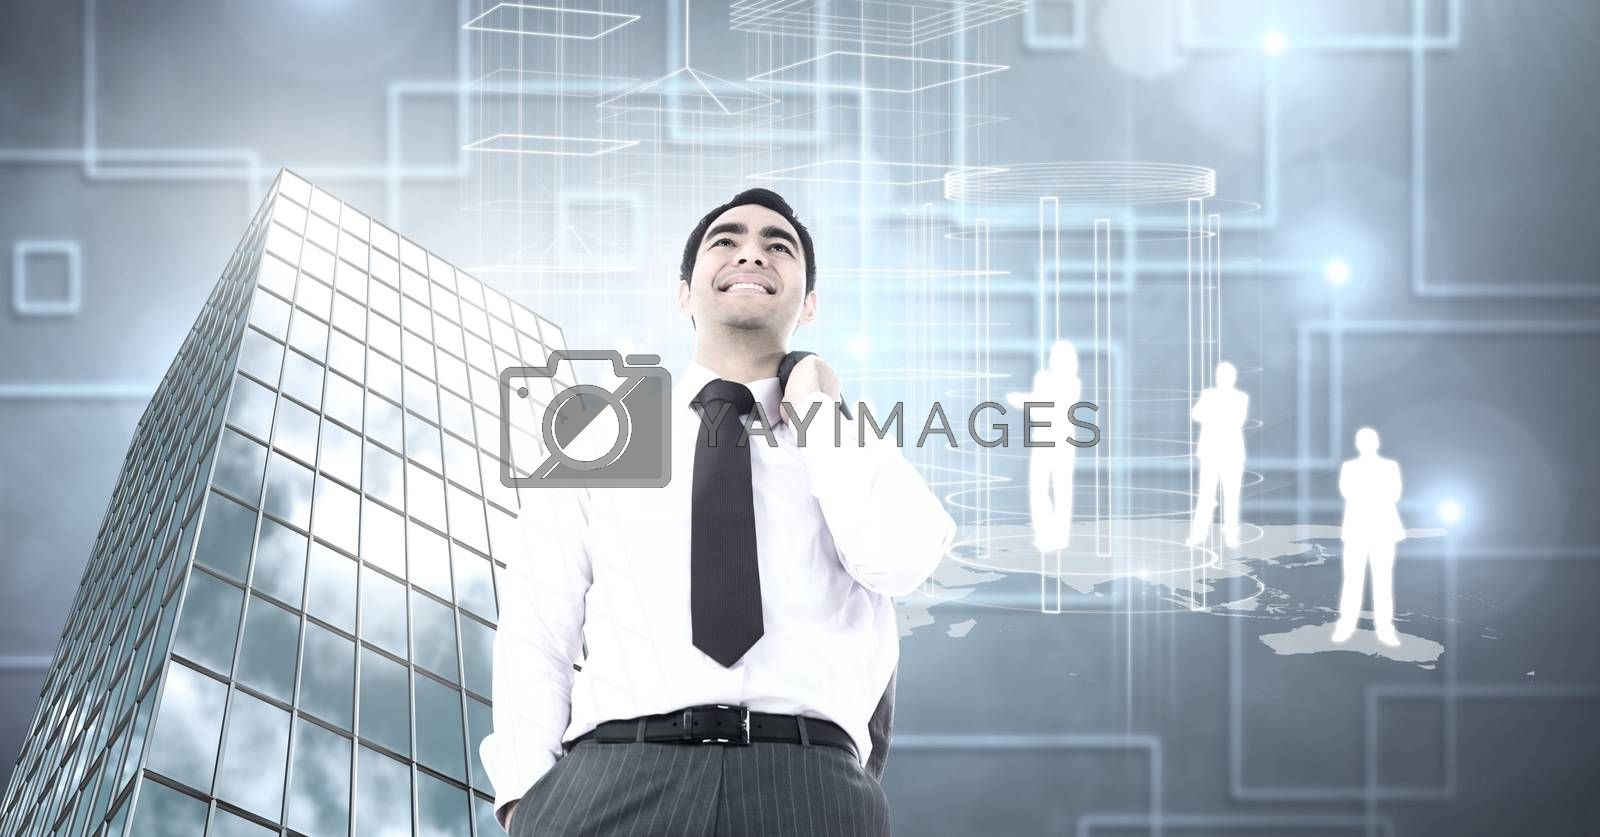 Digital composite of Businessman standing confidently with Tall building with  people silhouettes and shapes